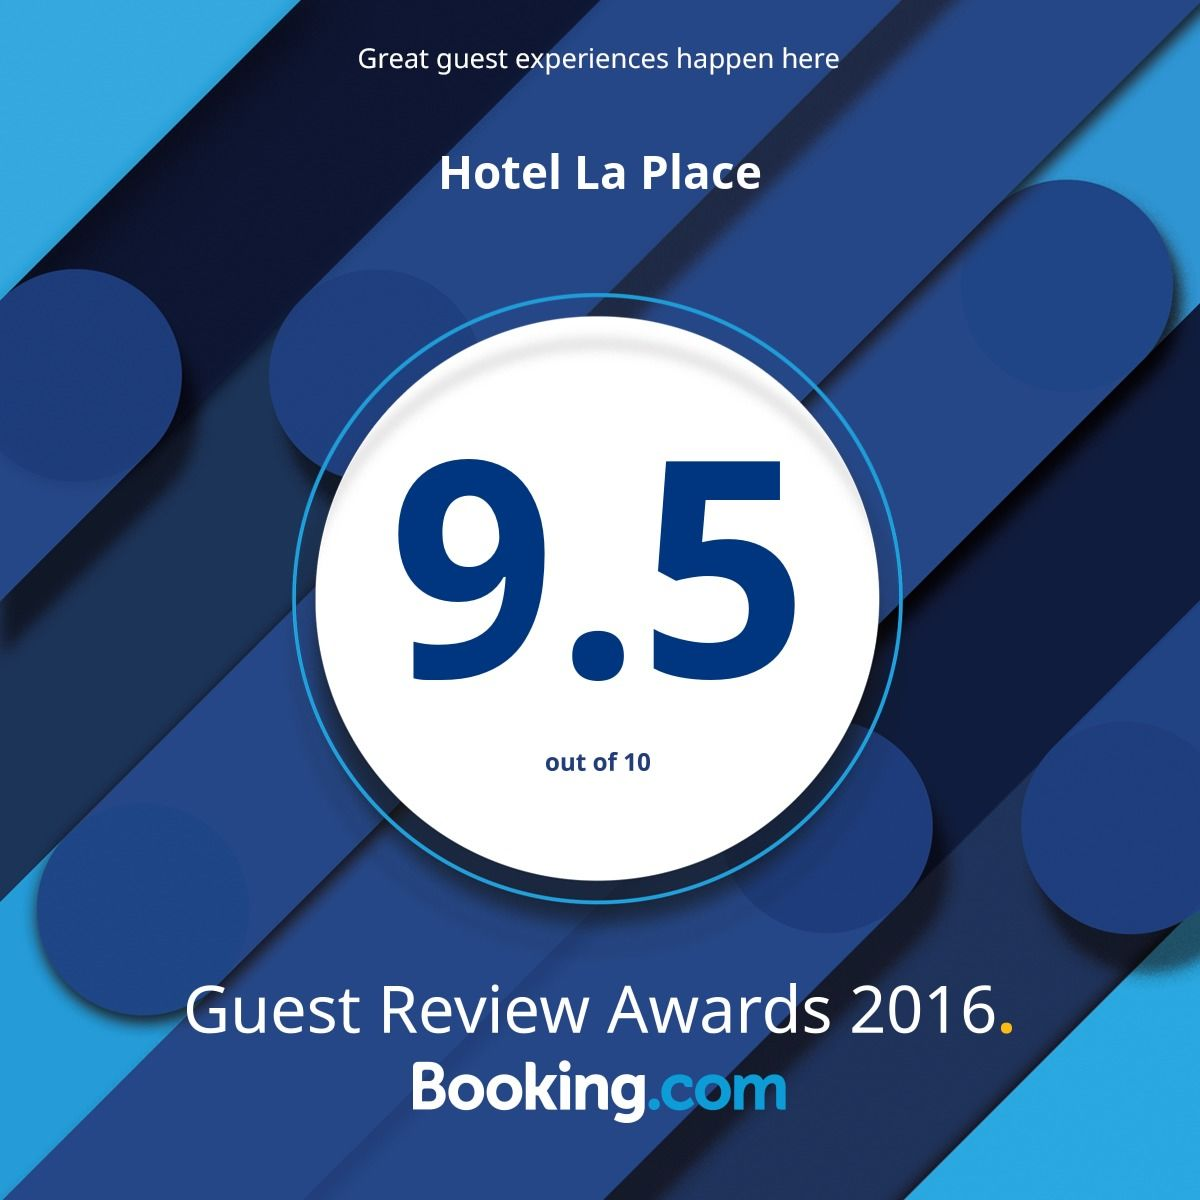 Booking.com, 9.5 out of 10 Awarded to Hotel La Place, Jersey